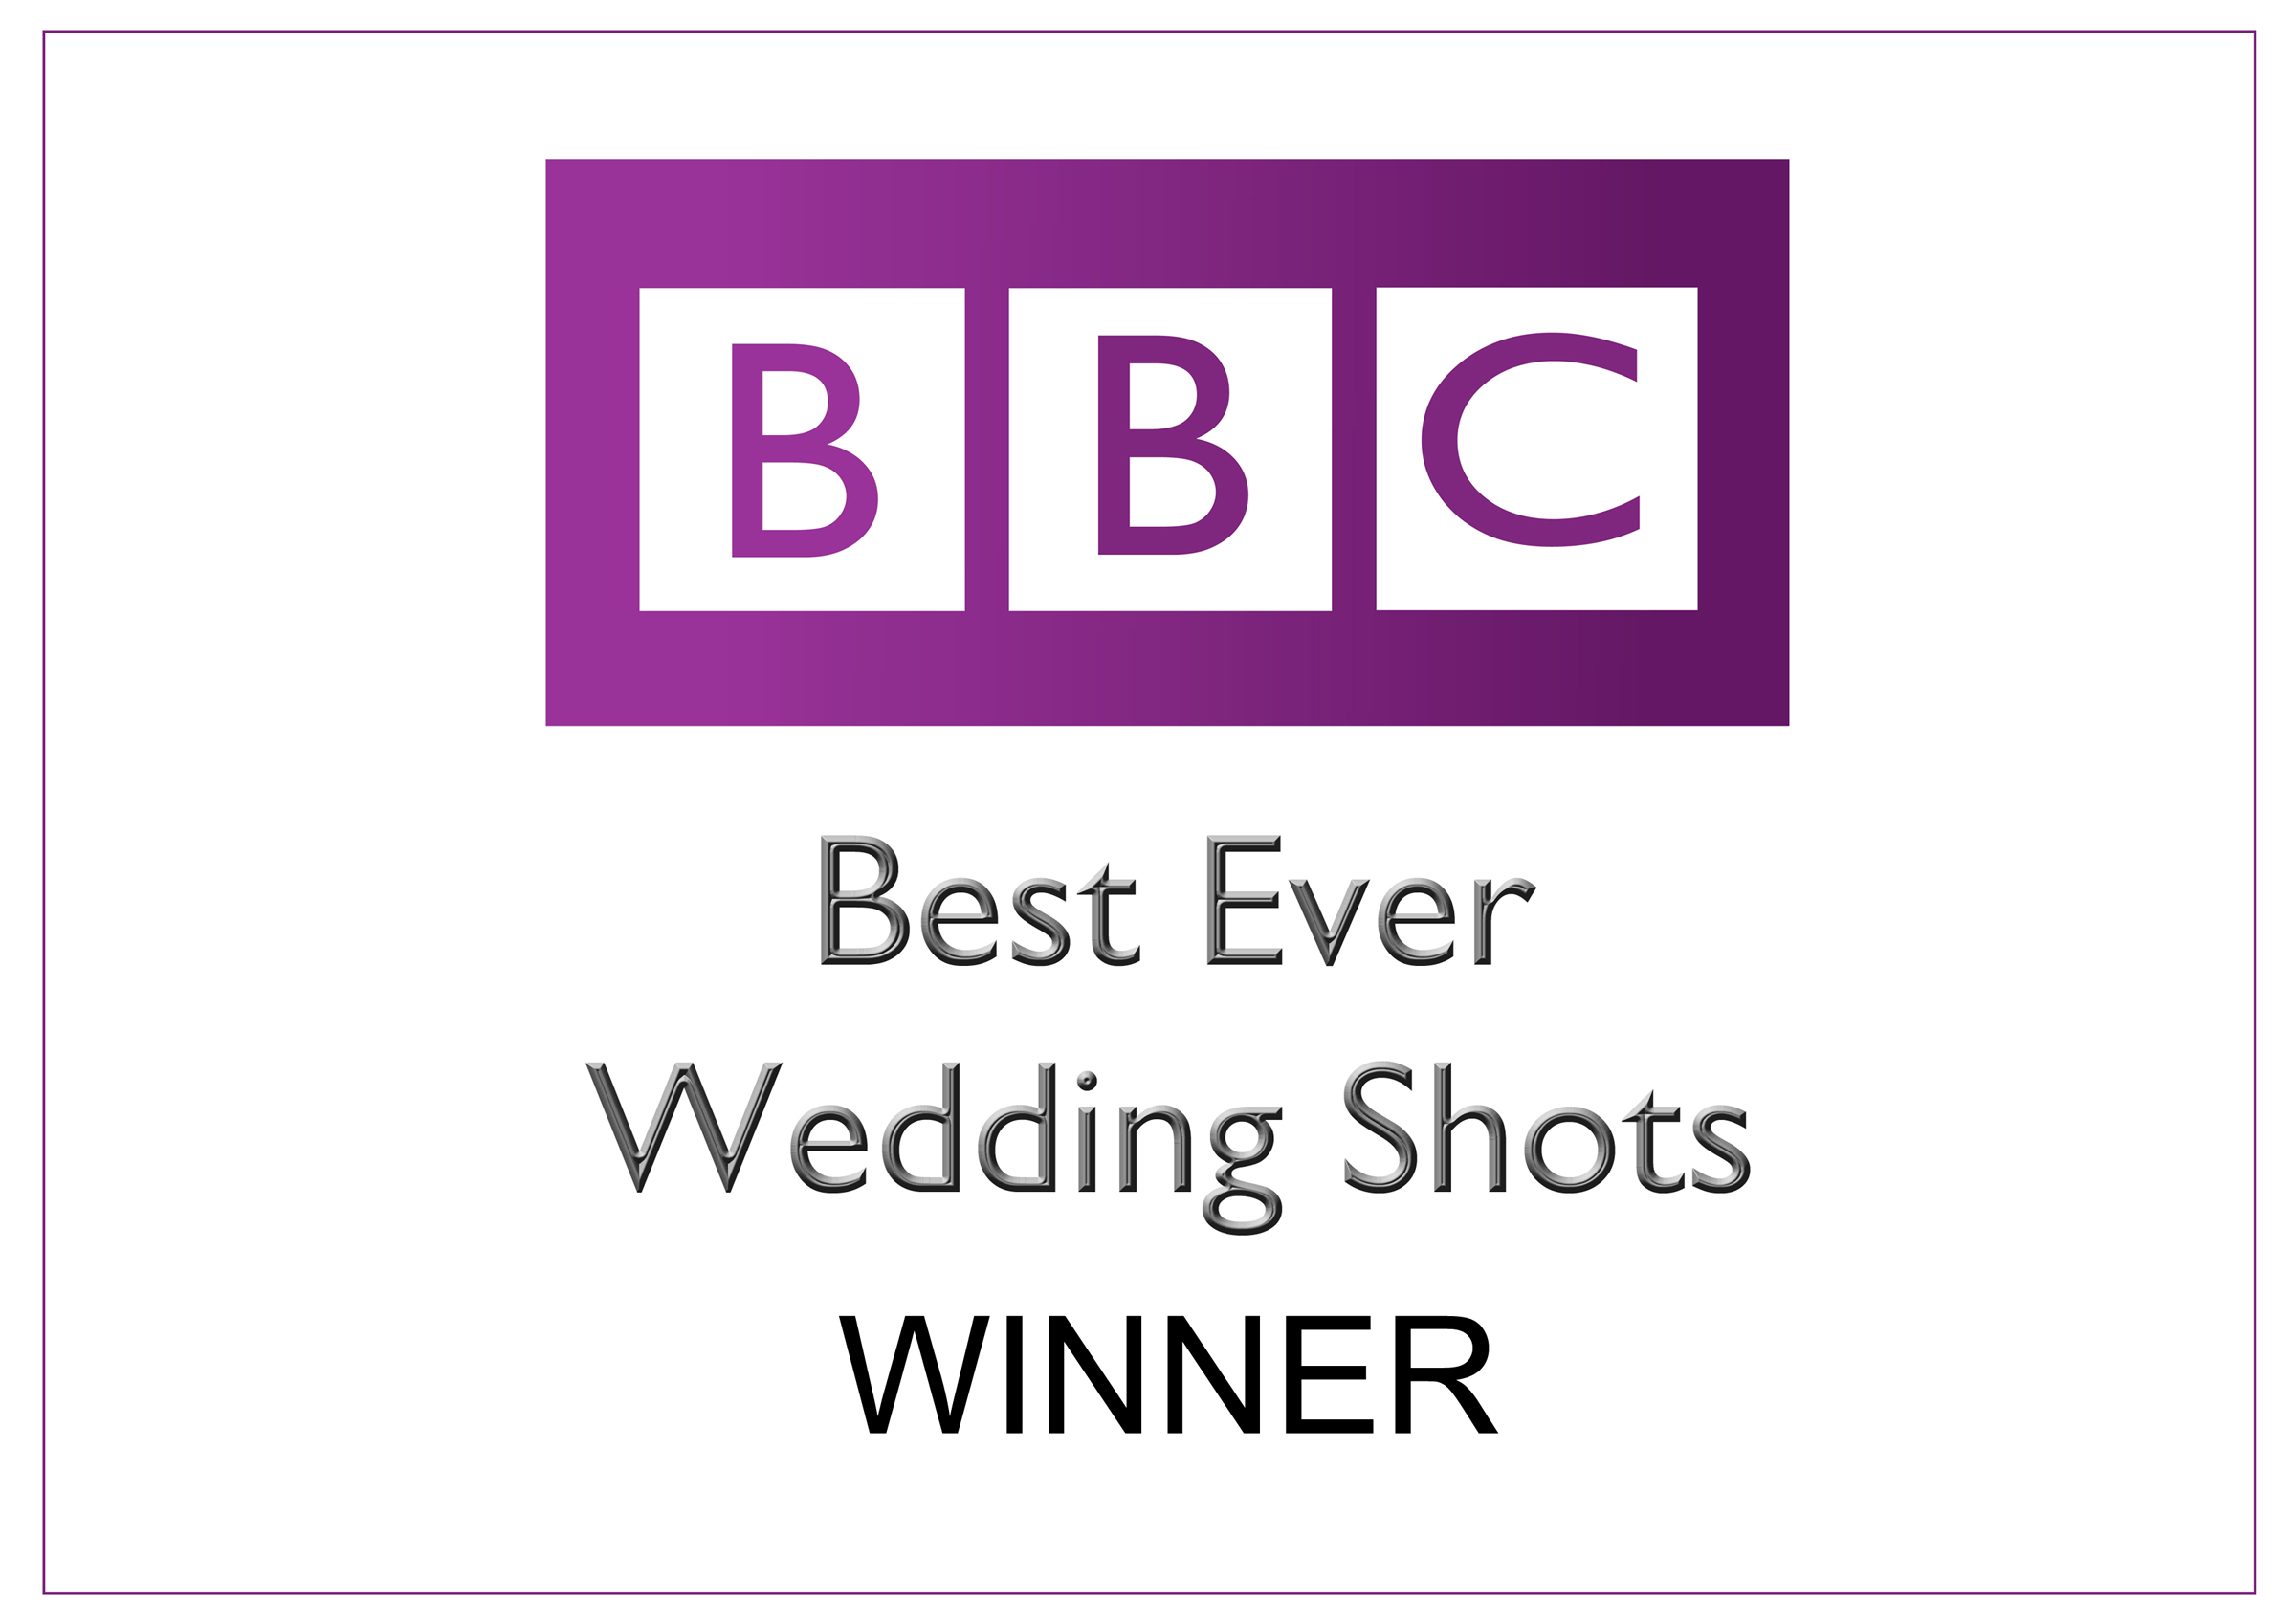 Best Ever Wedding Photography Winner_BBC.png